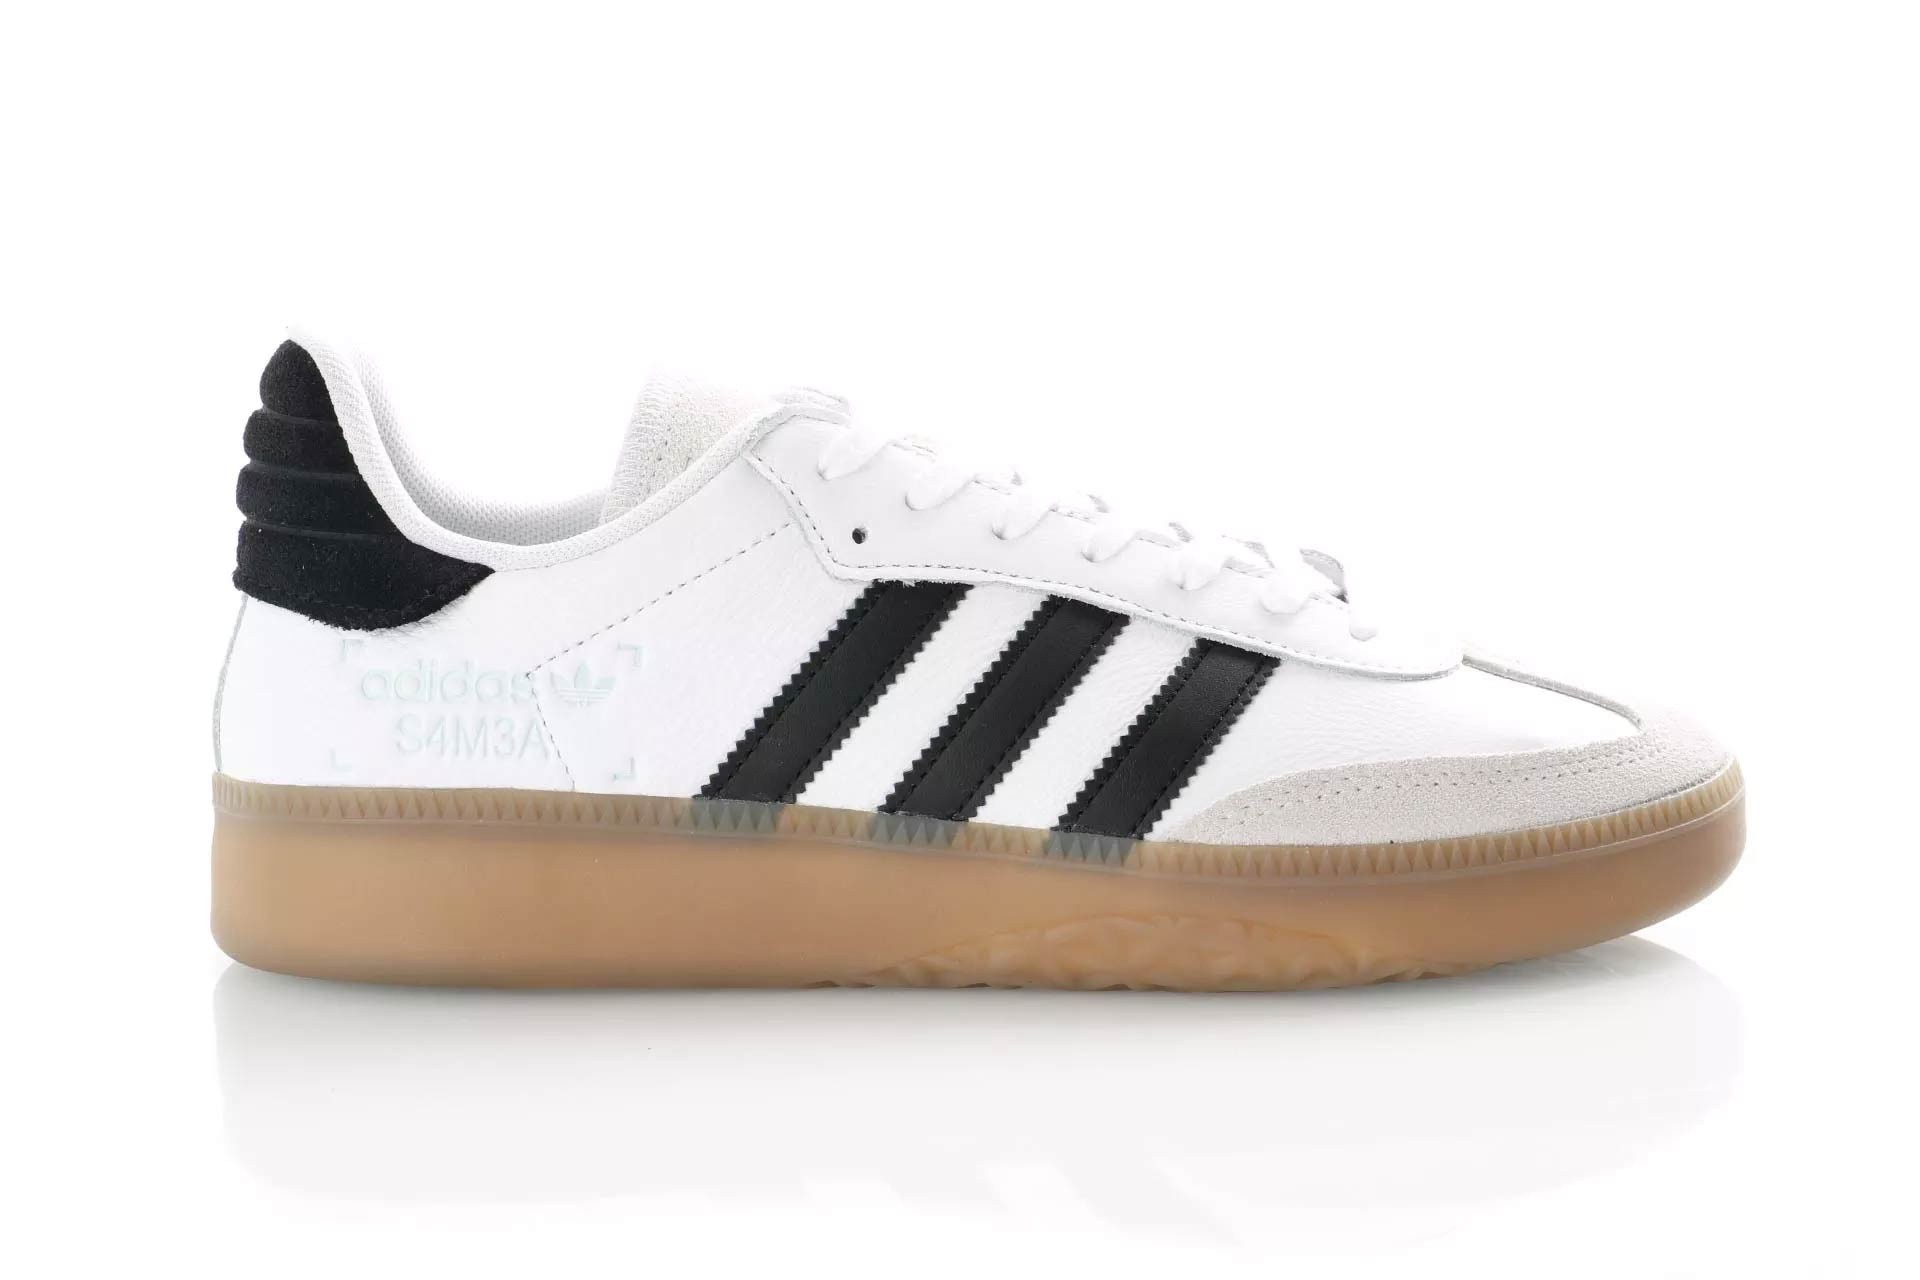 Foto van Adidas Samba Rm Bd7537 Sneakers Ftwr White/Core Black/Clear Mint